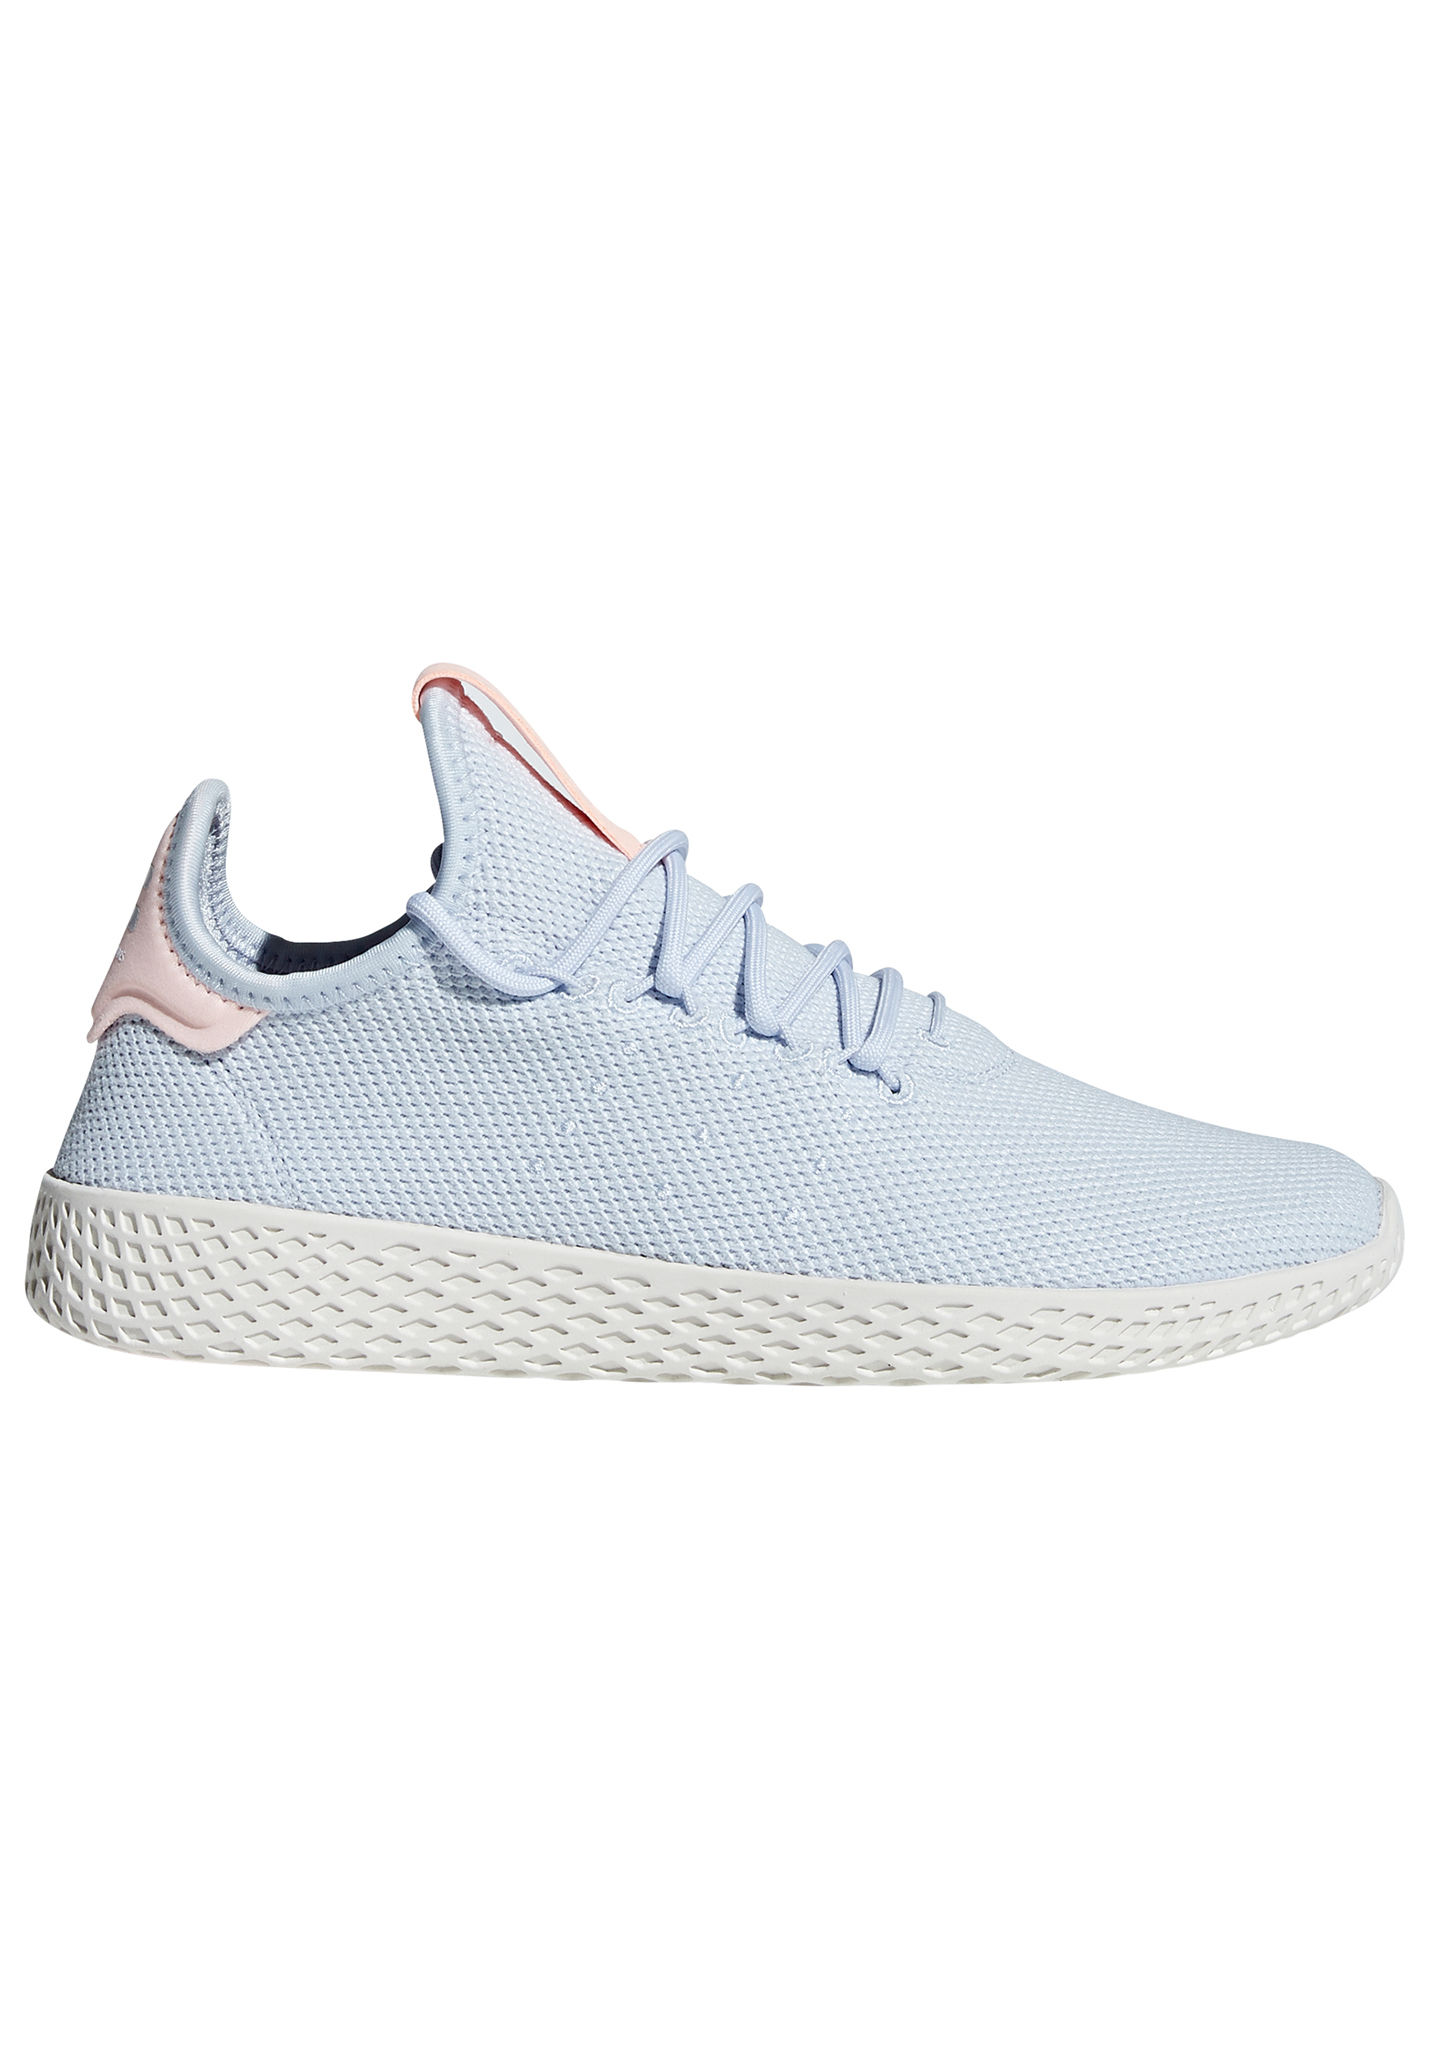 dc30af1bad1 ADIDAS ORIGINALS Pharrell Williams Tennis Hu - Sneakers voor Dames - Blauw  - Planet Sports